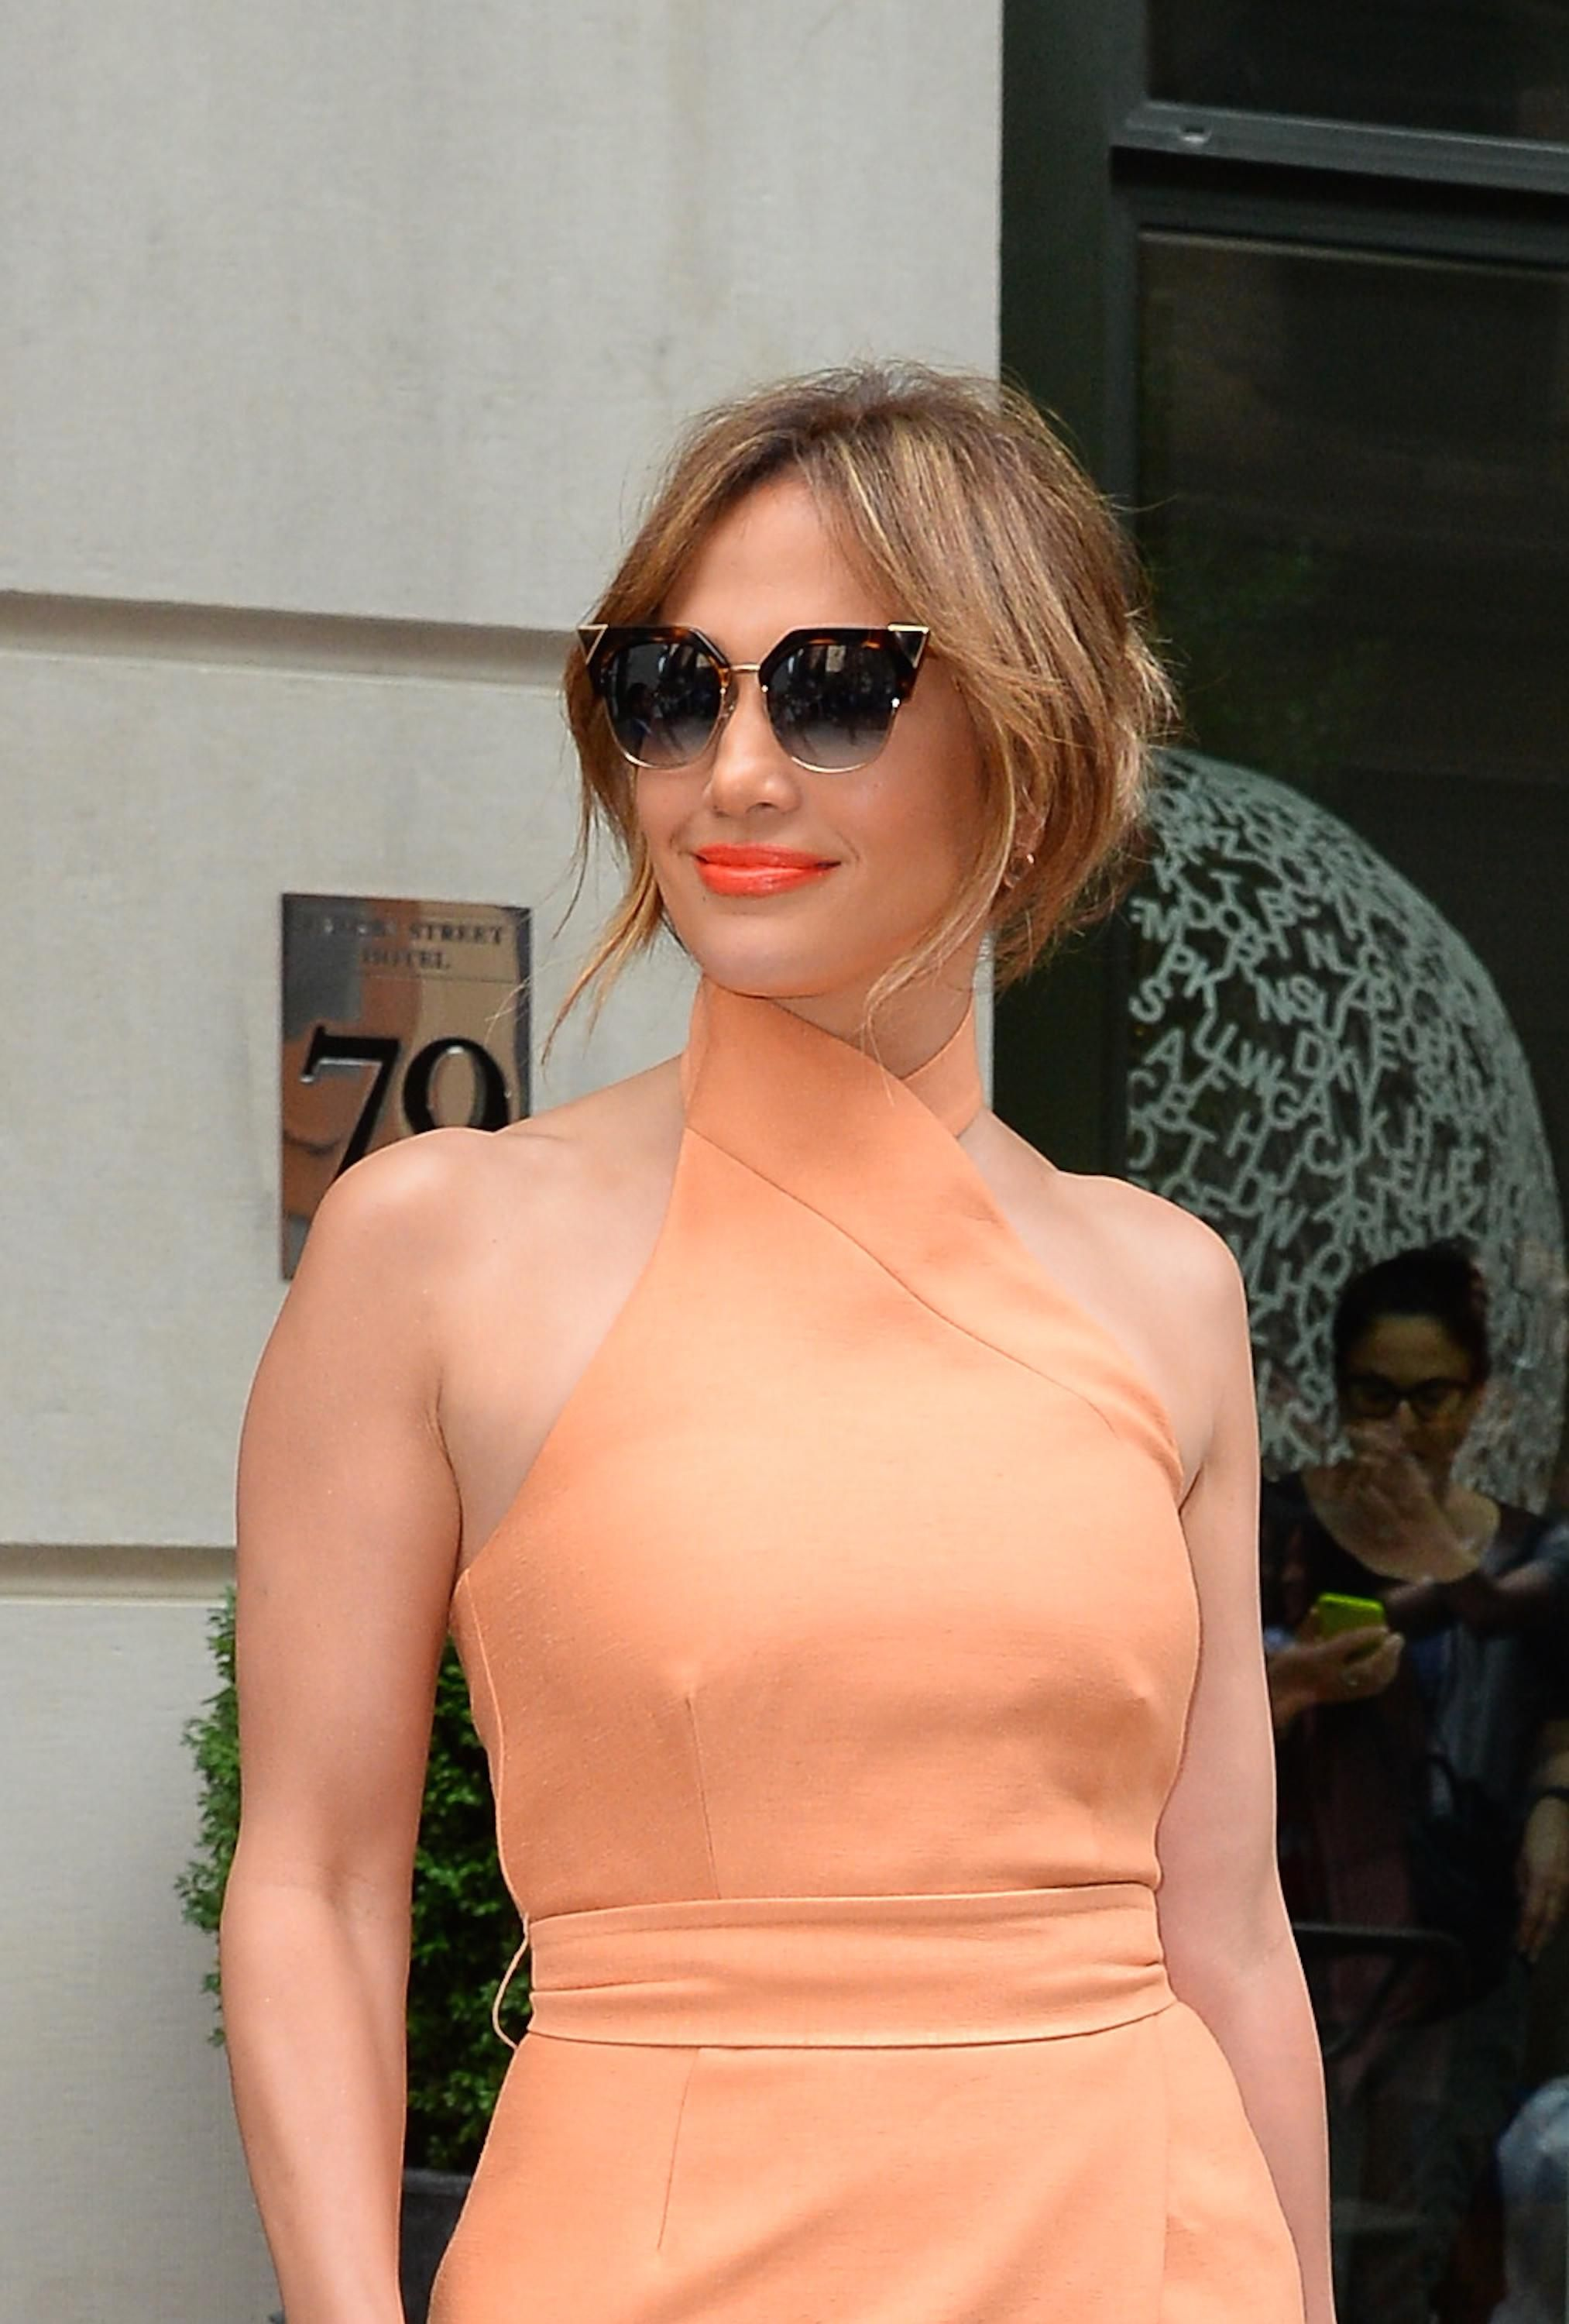 73057019351 Jennifer Lopez is peachy-keen in her Fendi Iridia sunglasses. Find your  summer shades on Fendi.com!